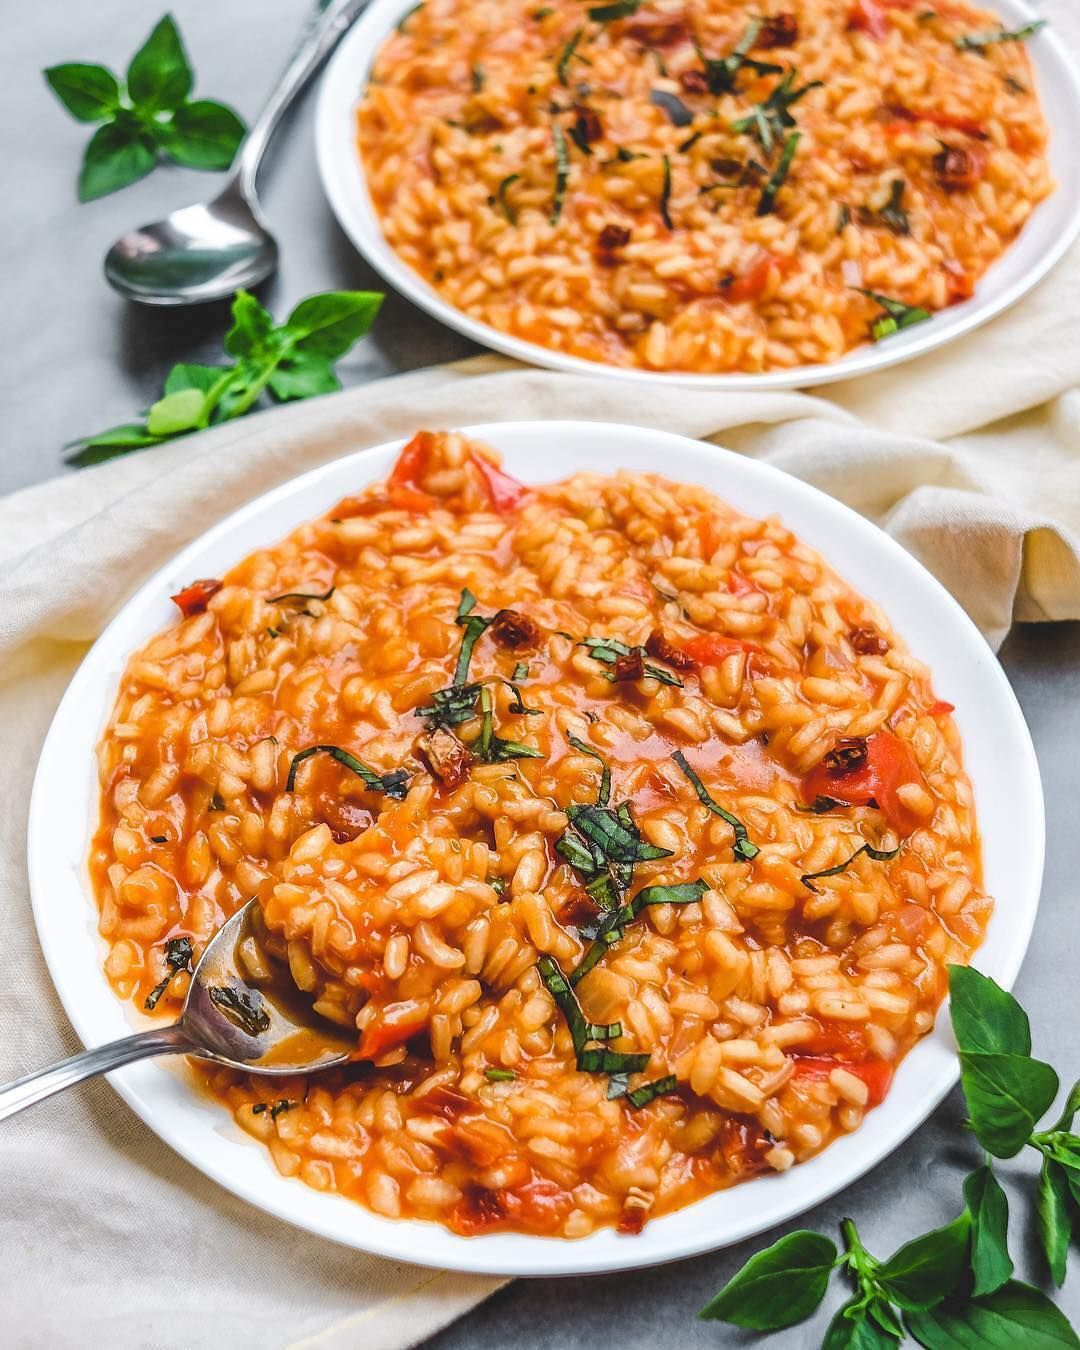 Vegan Recipes On Instagram Tomato And Basil Risotto By